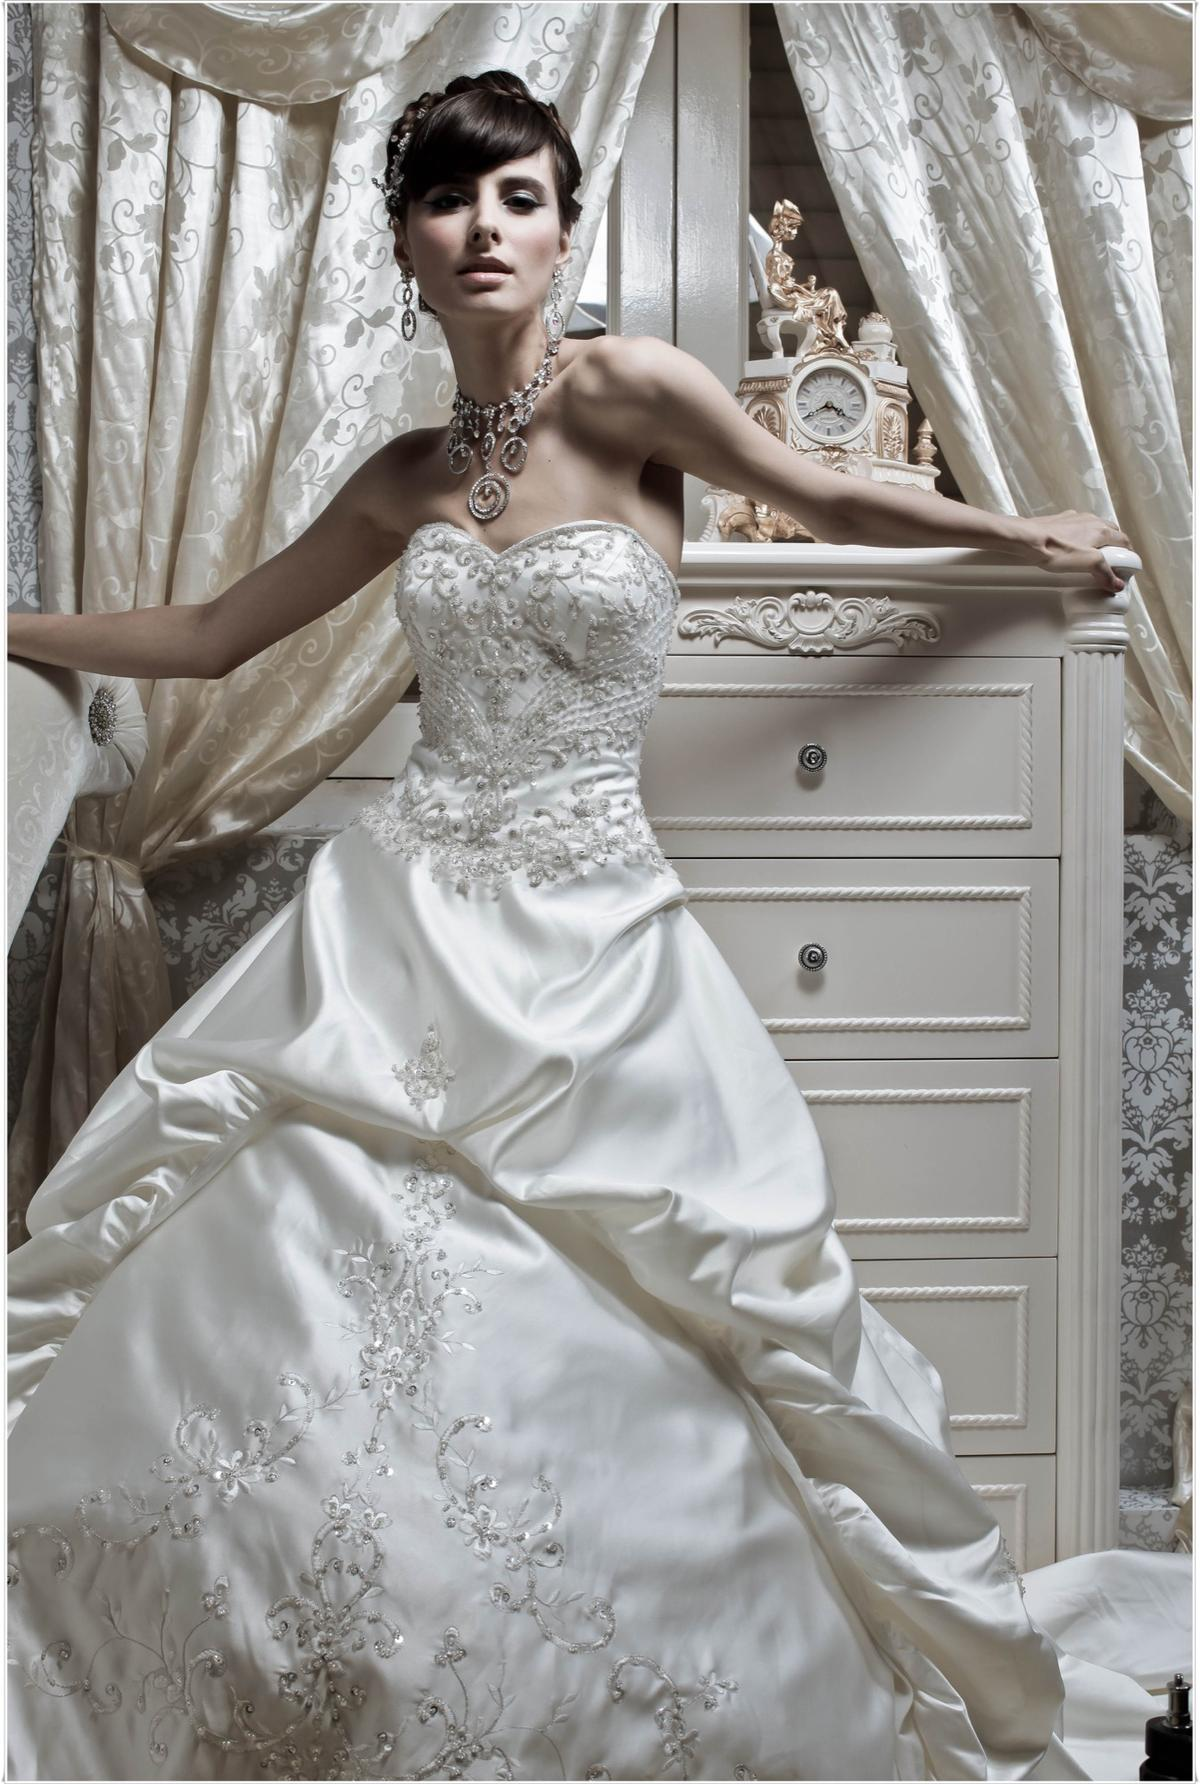 http://www.pwimages.com/images/perfectbride/1dac794aa65bb07469f5f950d6b0517a-223.jpg